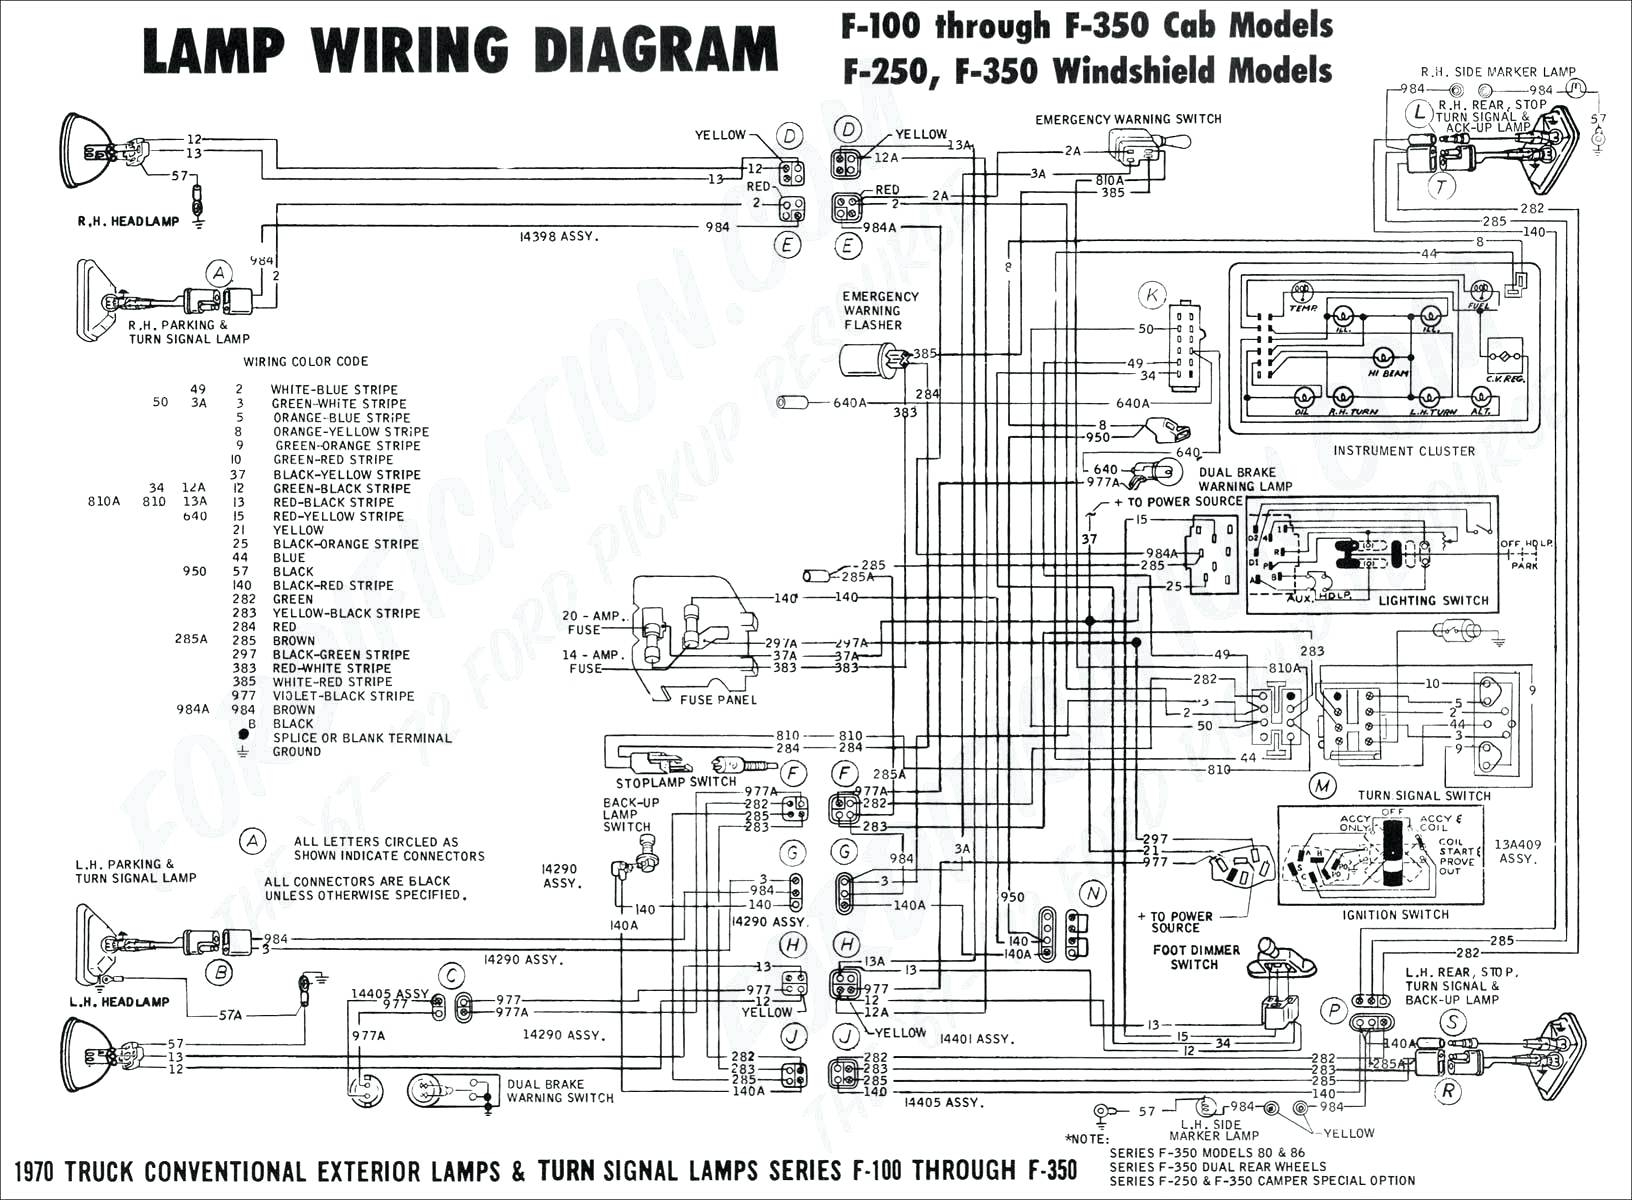 hight resolution of 03 ram 1500 fuse diagram wiring diagram blog 2003 dodge ram headlight wiring diagram 2003 dodge ram fuse diagram